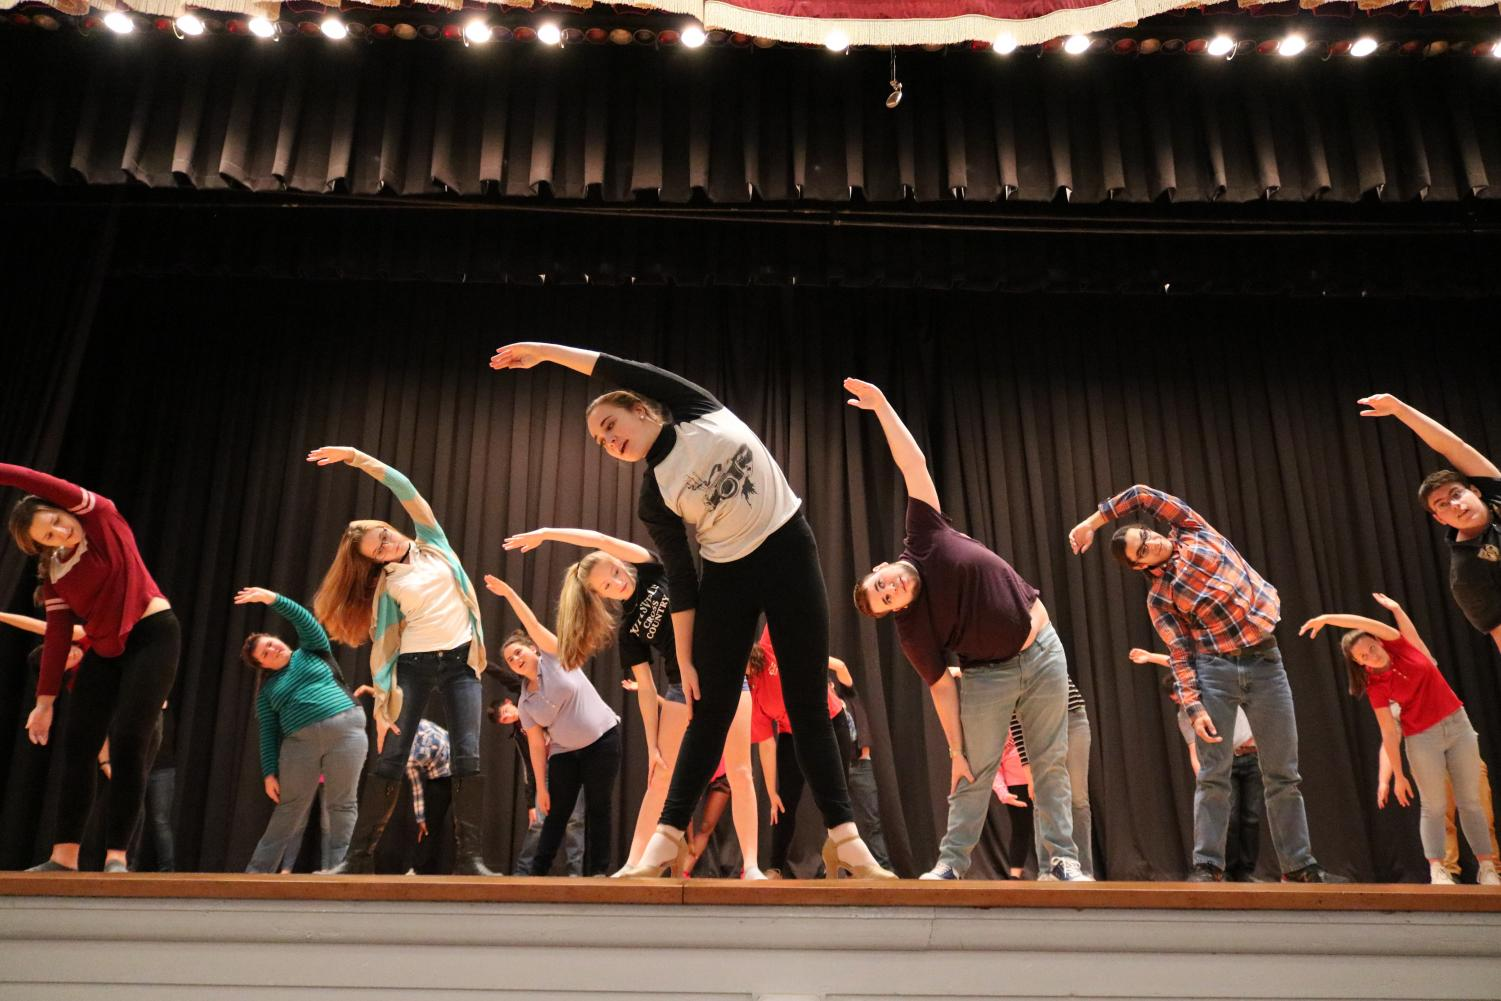 "Members of the Drama Club stretch before rehearsing for their musical. The Drama Club presented How to Succeed in Business Without Really Trying in March, and according to Mrs. Maria Malek, Drama Club adviser and English teacher, audience numbers are lower in years when the musical does not have high name recognition. ""Our audience numbers were not as high as they were in previous years,"" Mrs. Malek said."